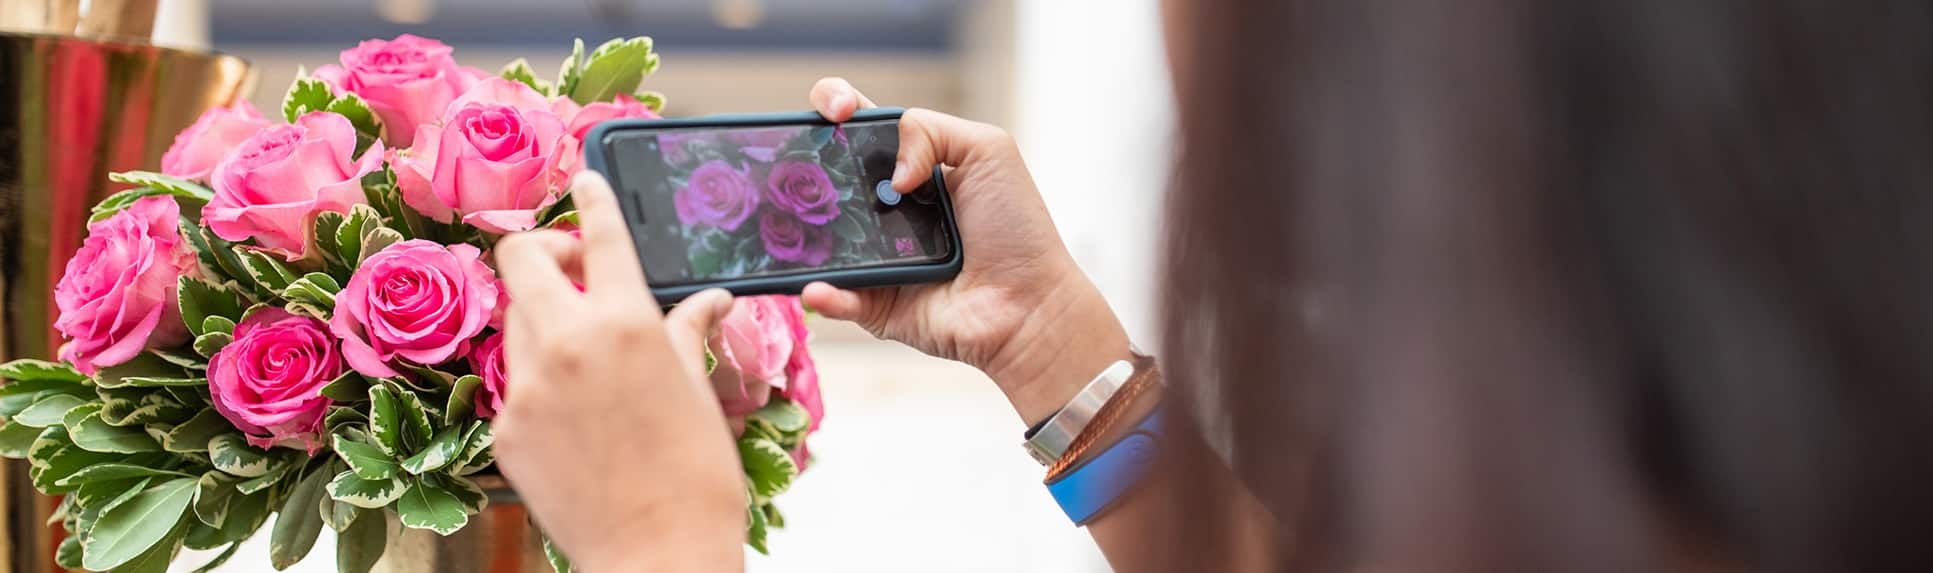 A teenage girl takes a photo of a vase of roses with her mobile phone